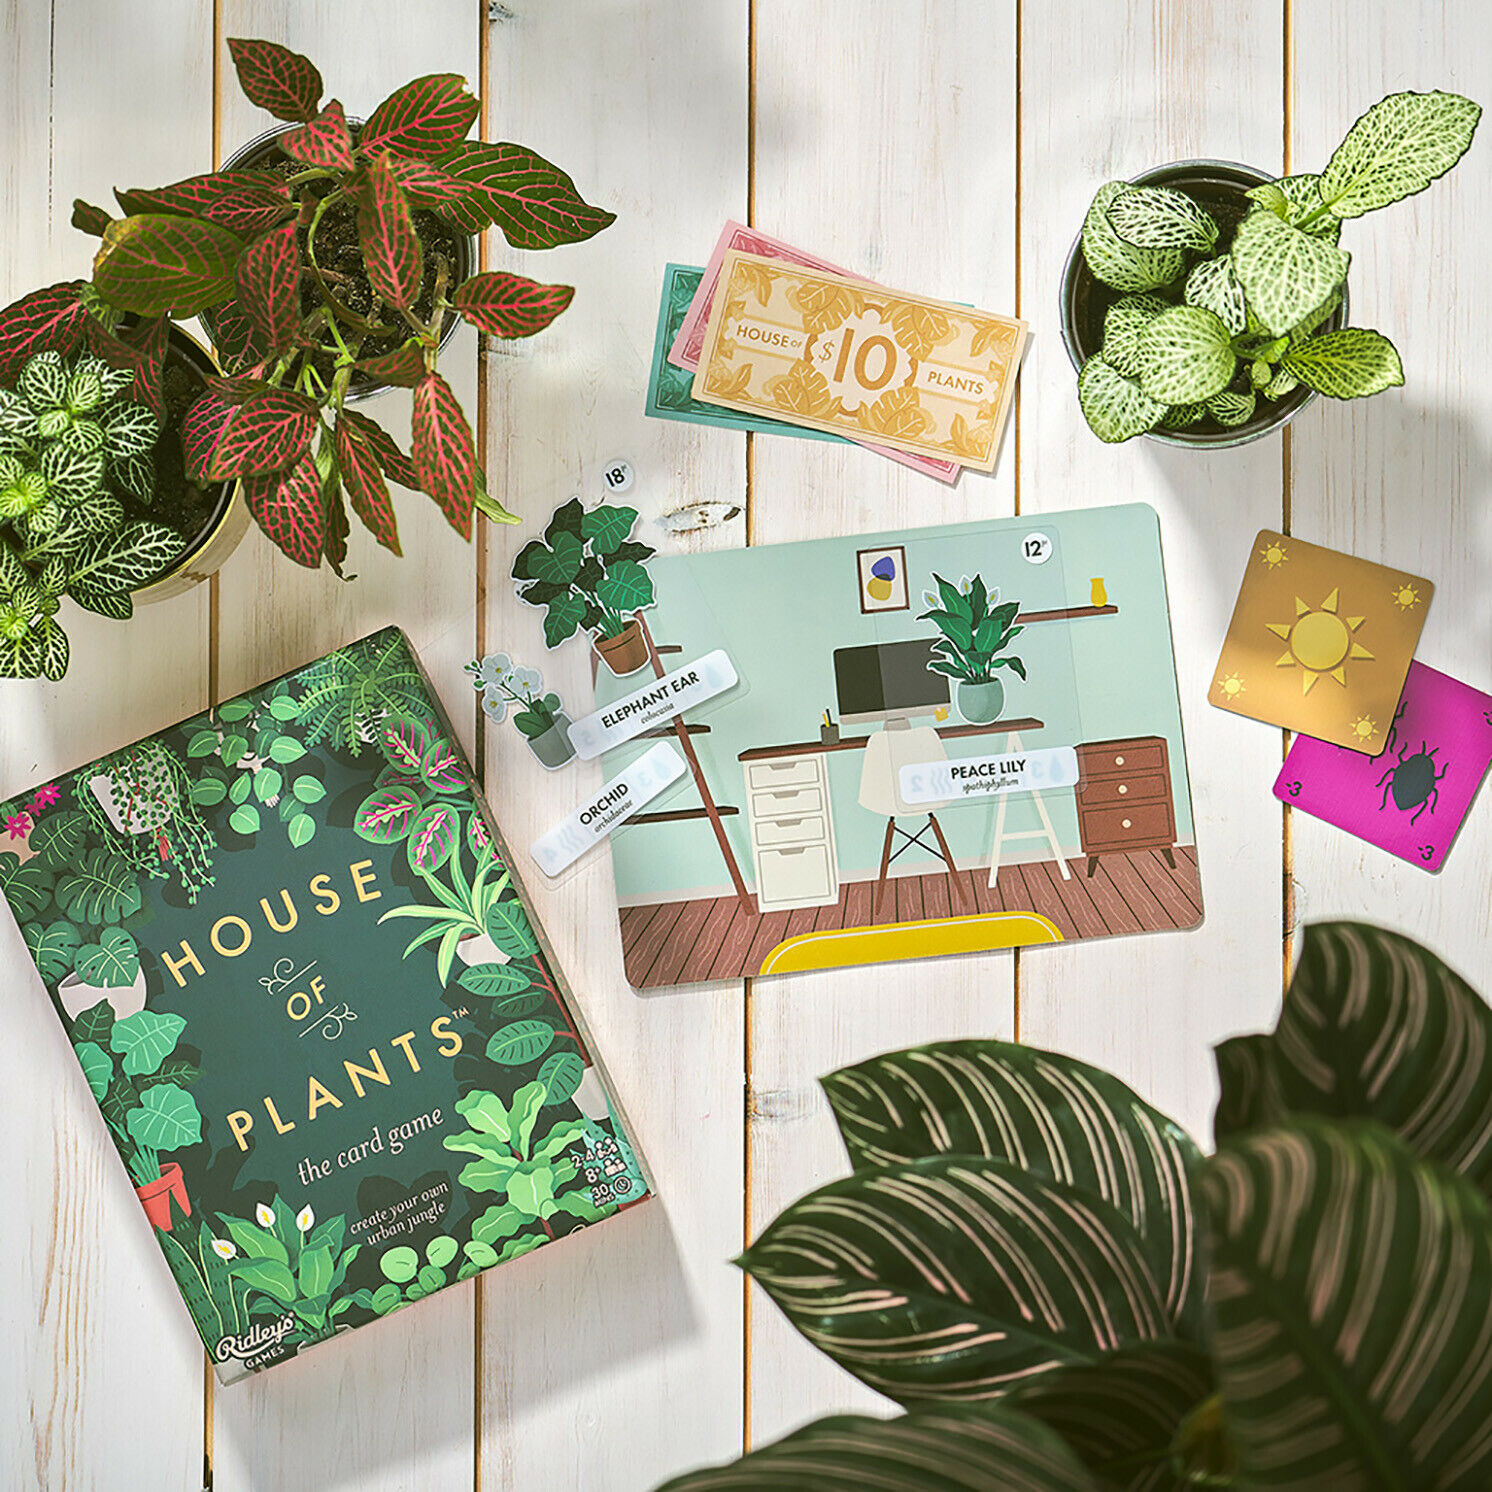 Ridley's Games – House of Plants Card Game in Gift Box